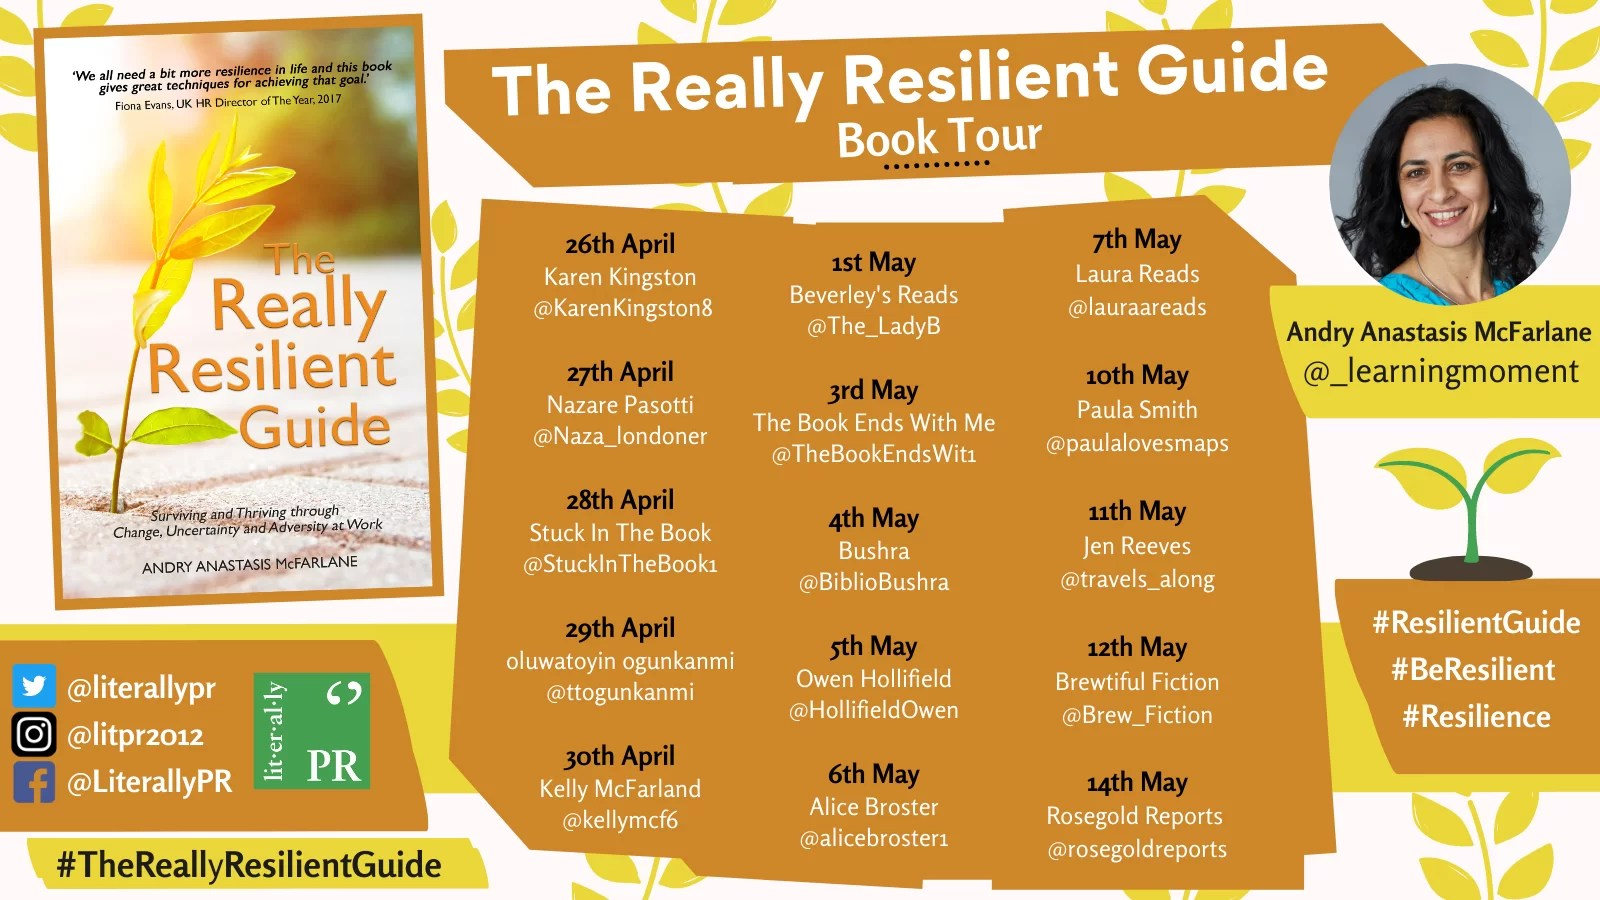 Really Resilient Guide by Andry Anastasis McFarlane